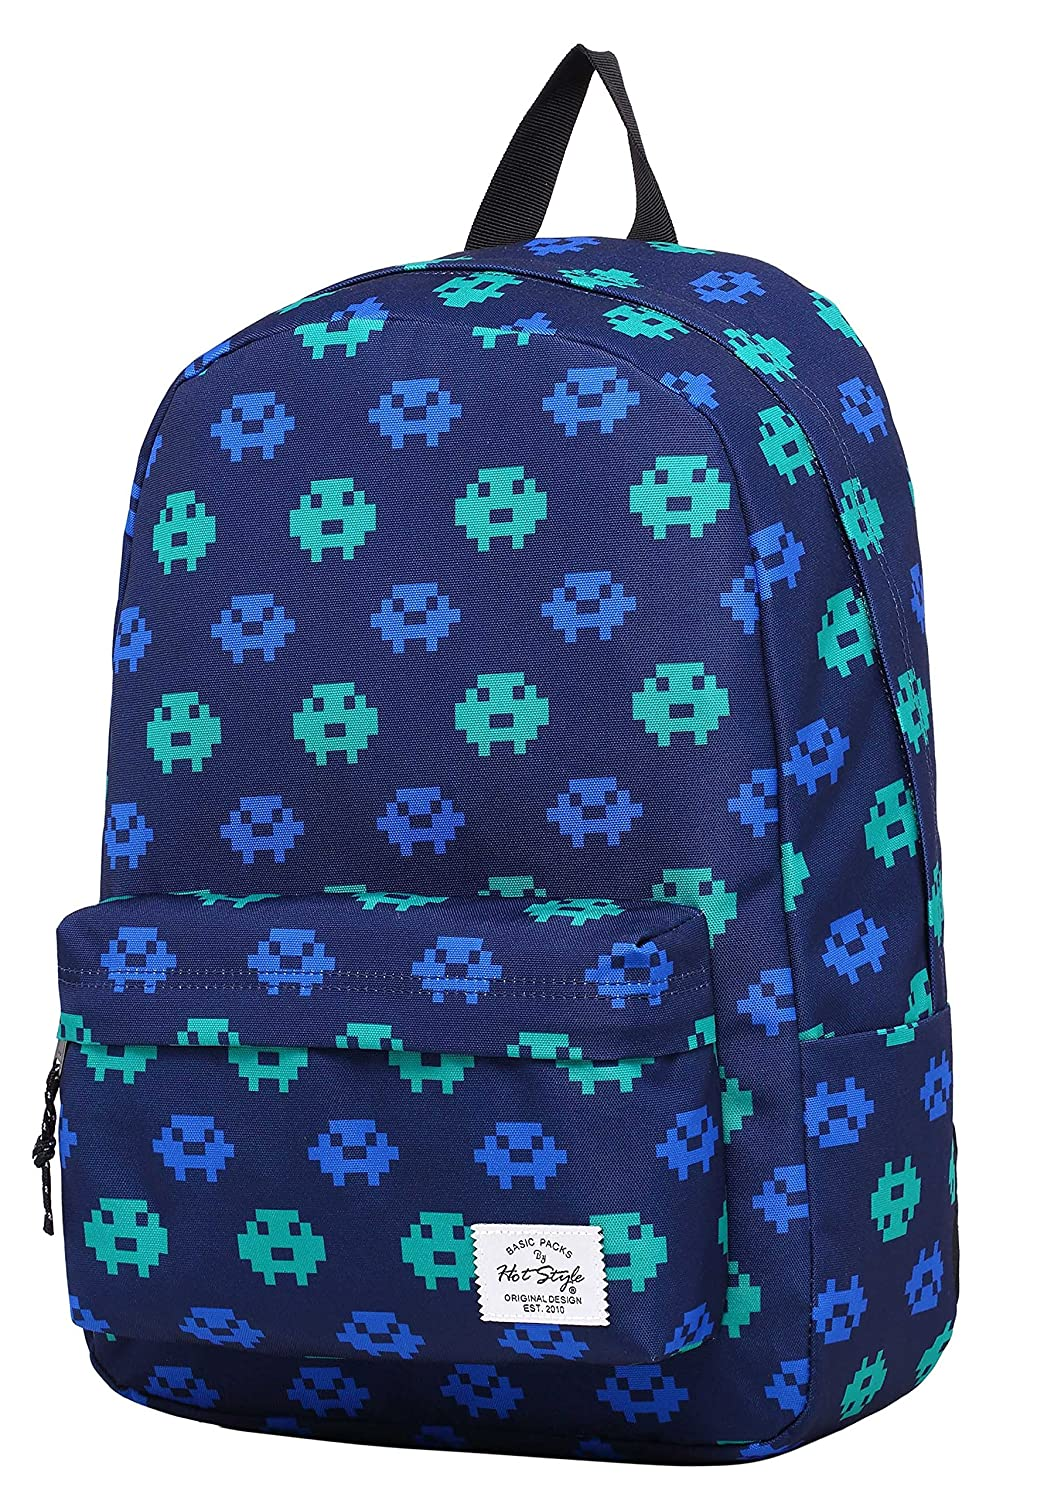 SIMPLAY Classic School Backpack Bookbag, 17'x12.5'x5', Assorted Colors and Prints